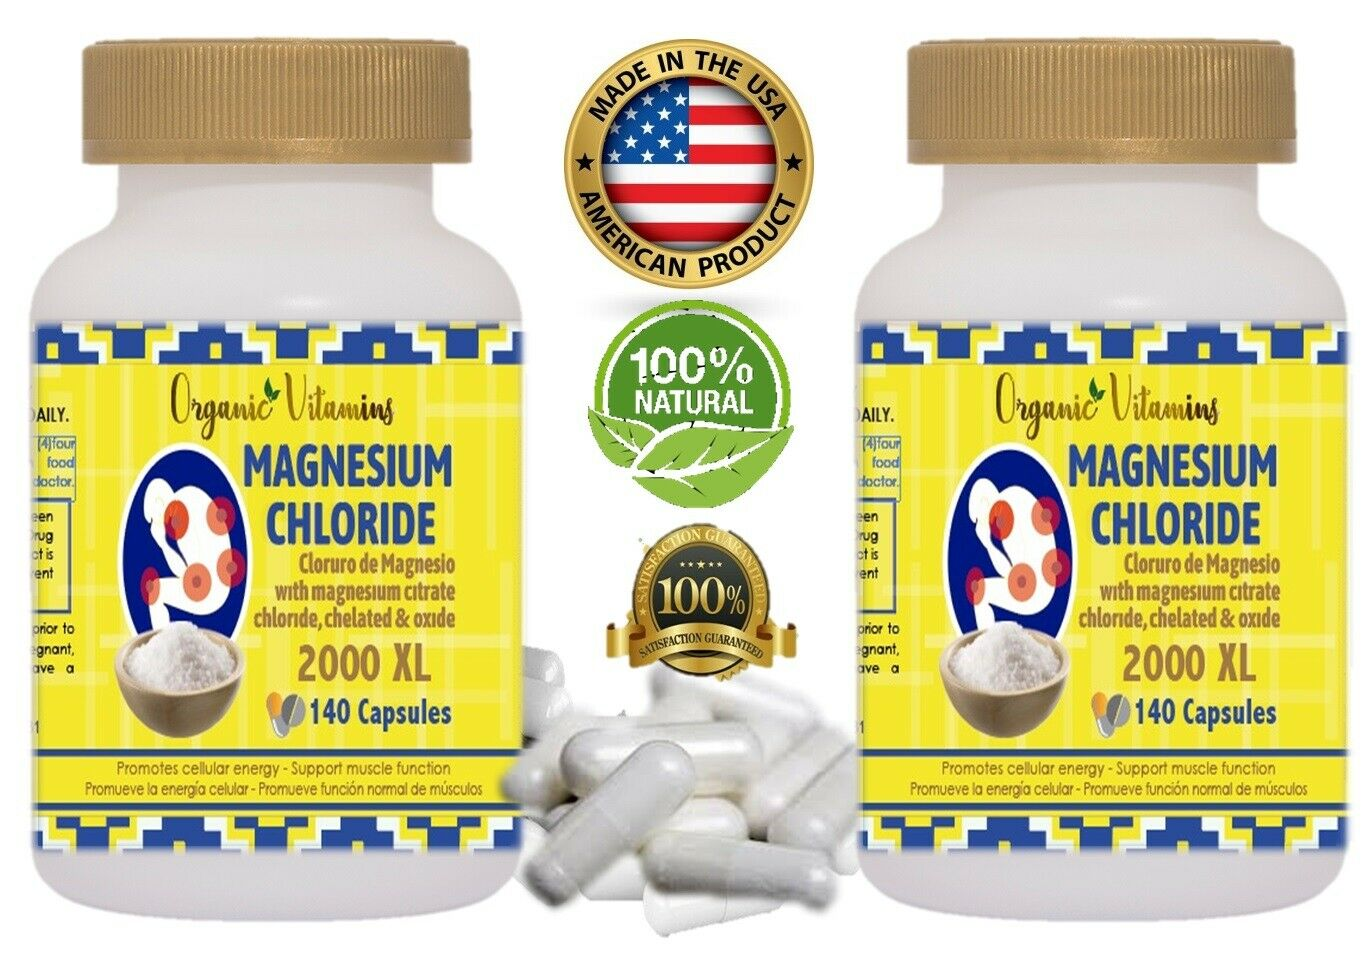 Cloruro de Magnesio Magnesium Chloride High absorption 140 capsules extract pure 6